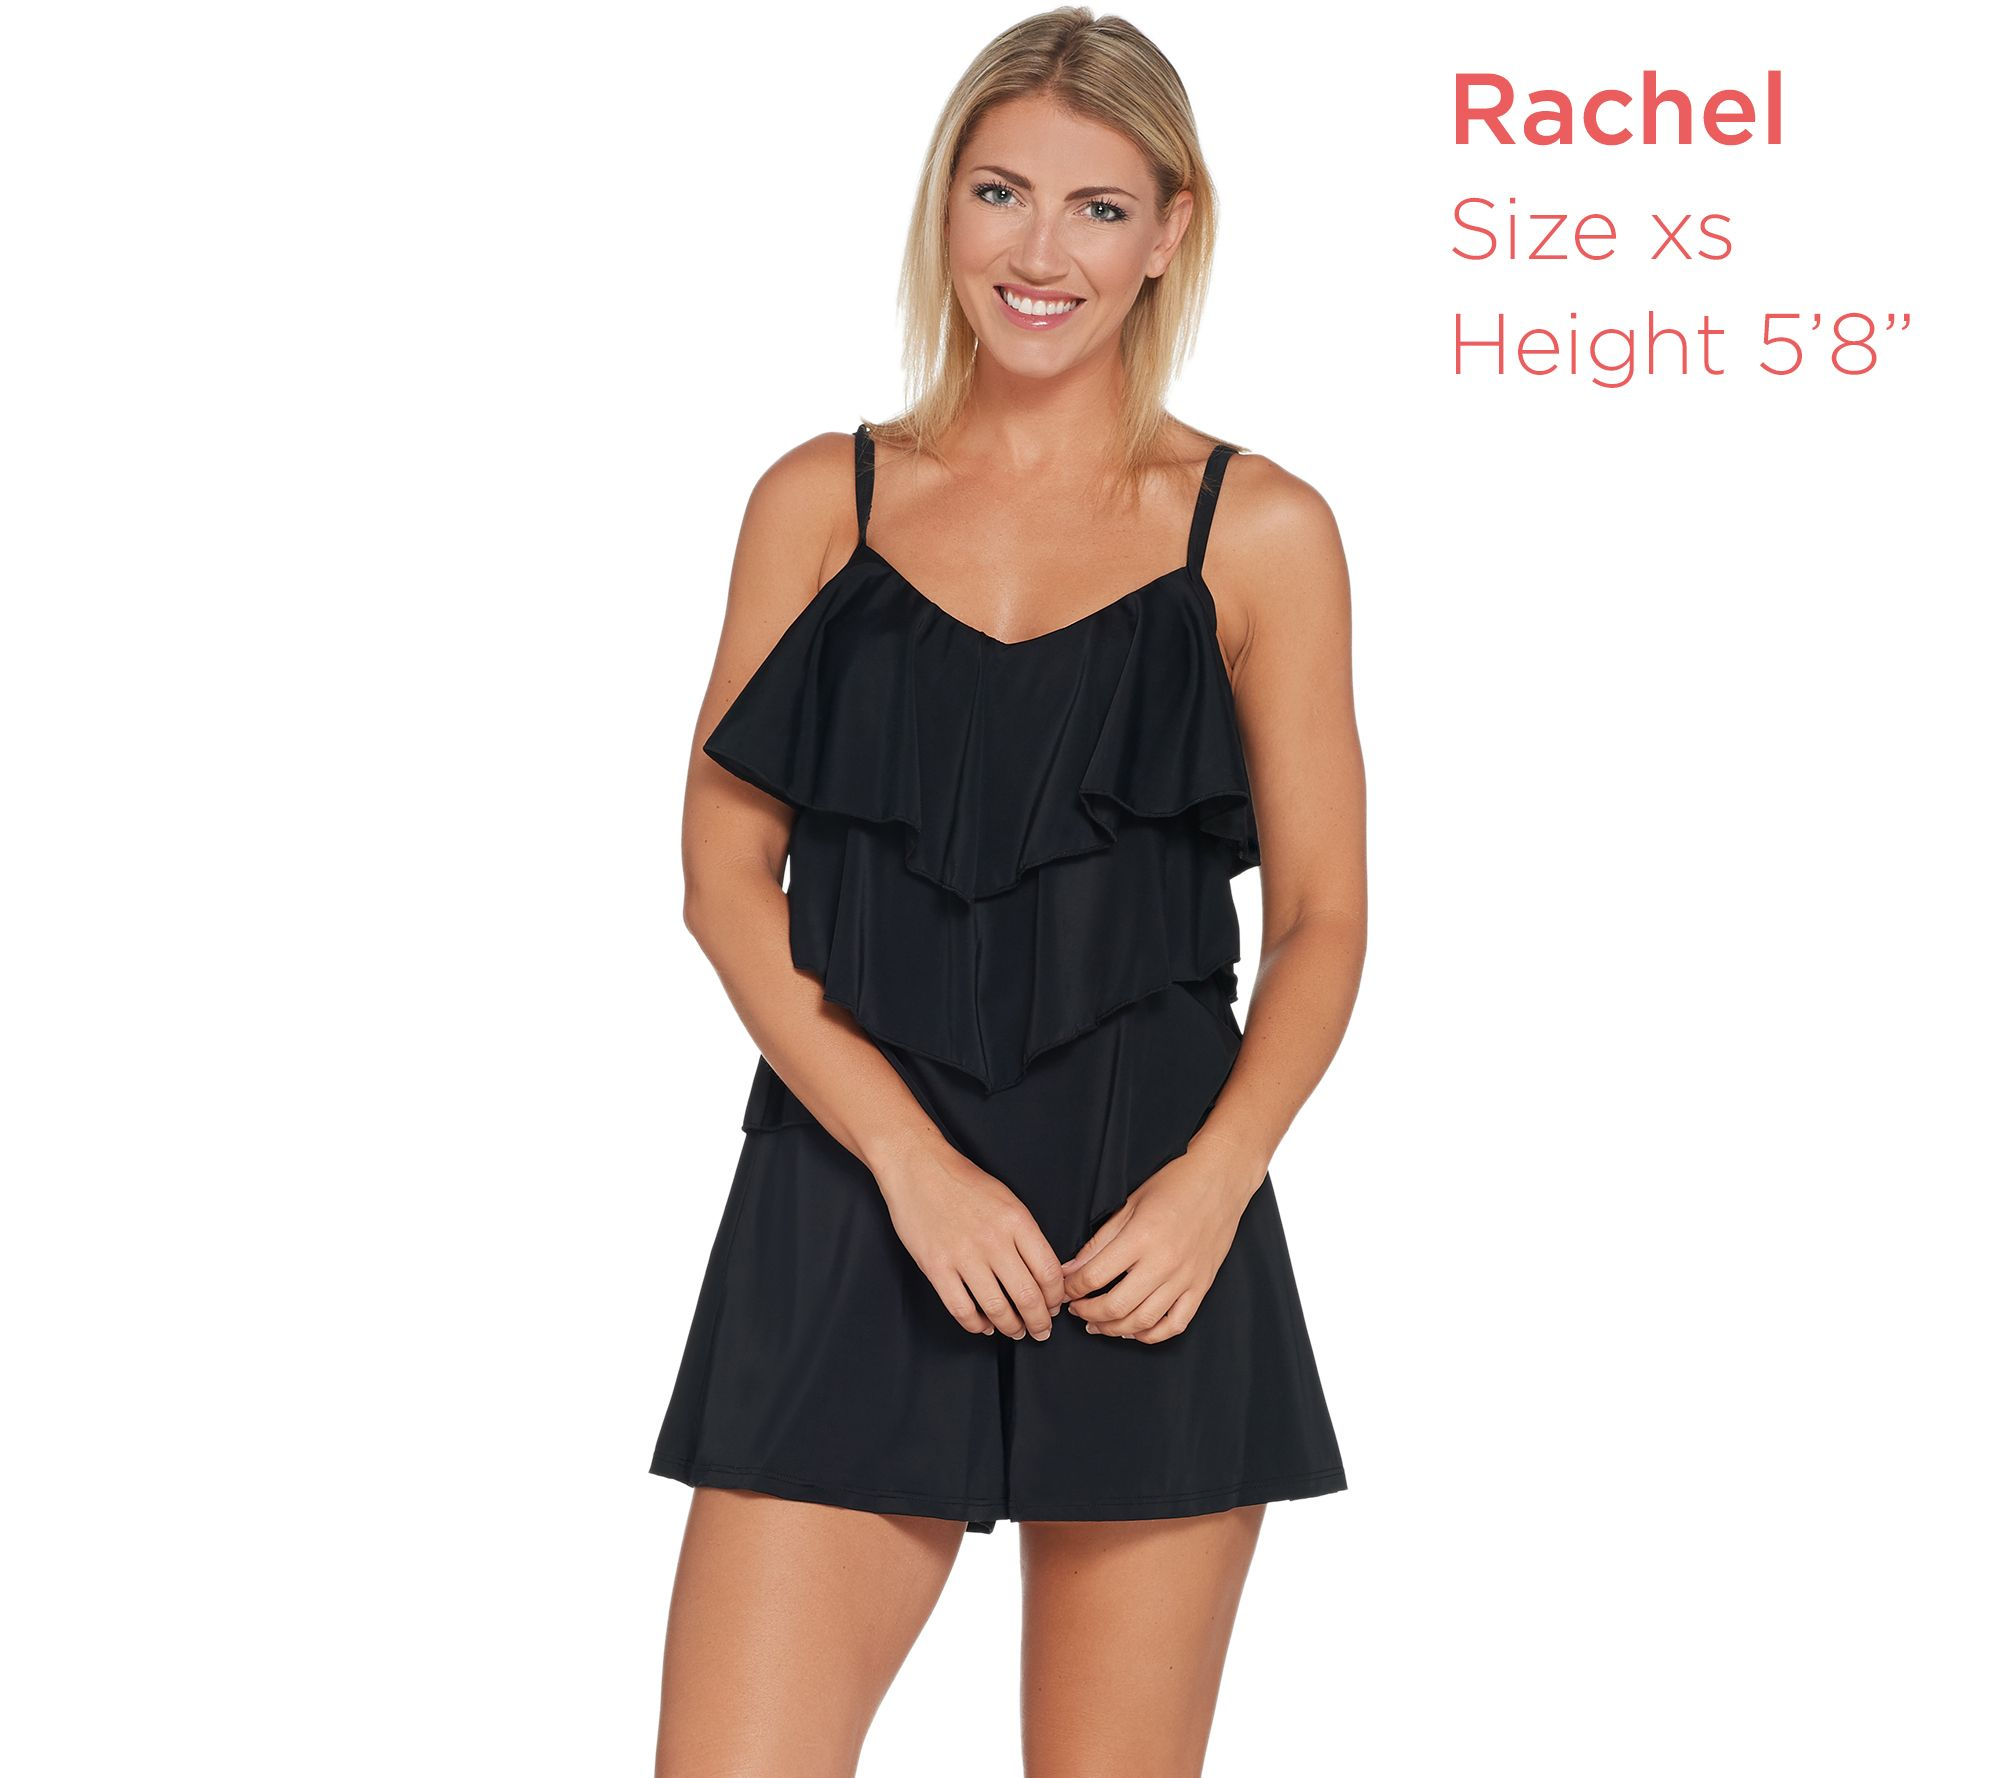 929e18101c3f5 Fit 4 U V-Tiered Romper Swimsuit - Page 1 — QVC.com